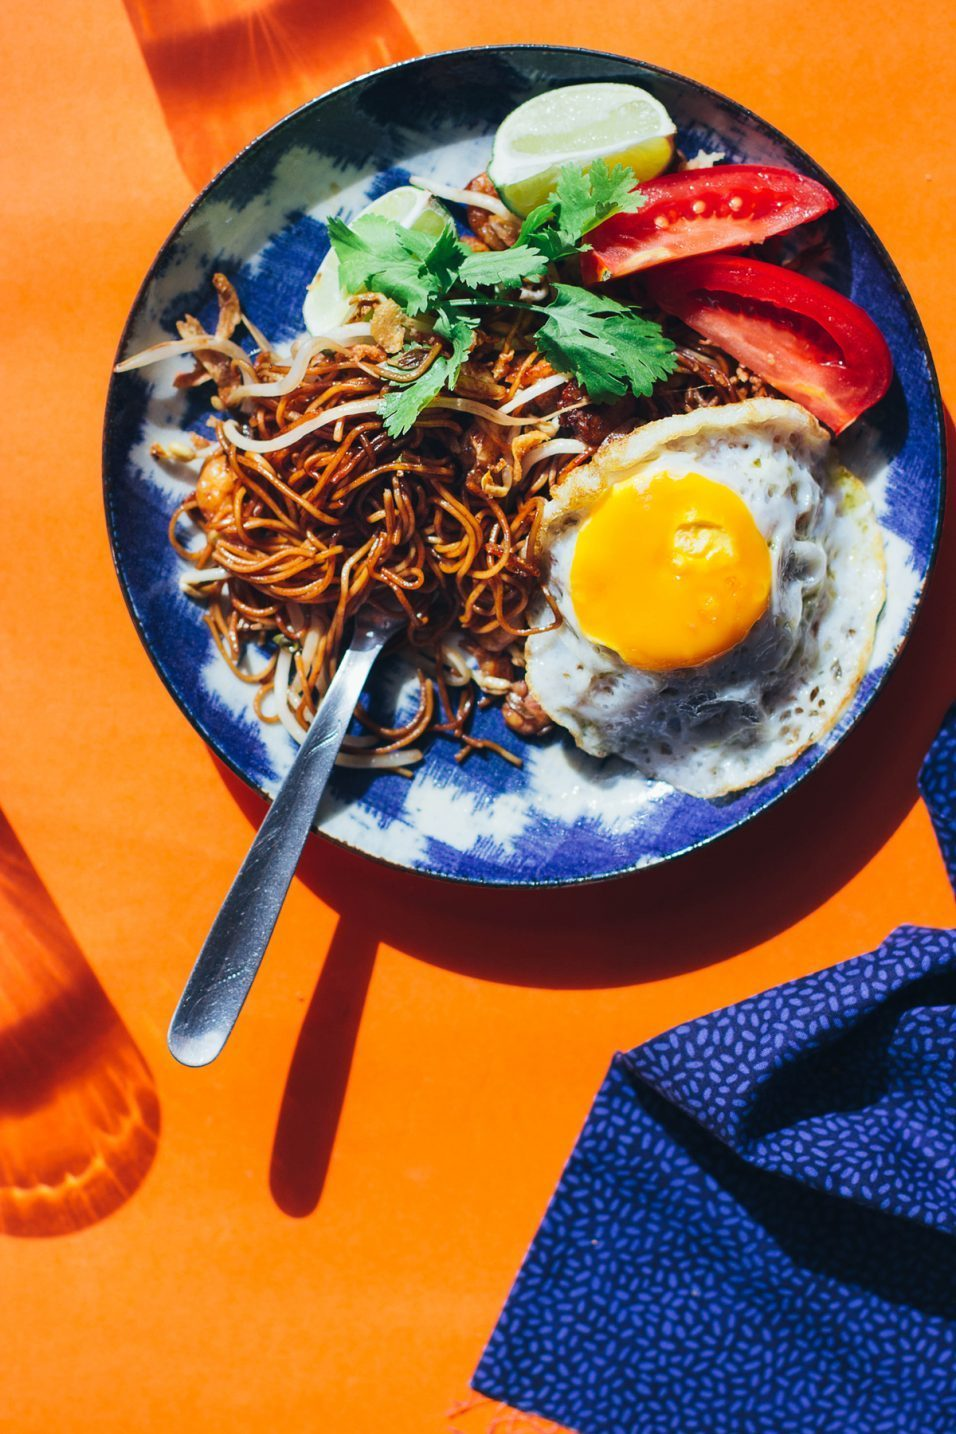 fideos indonesios mie goreng